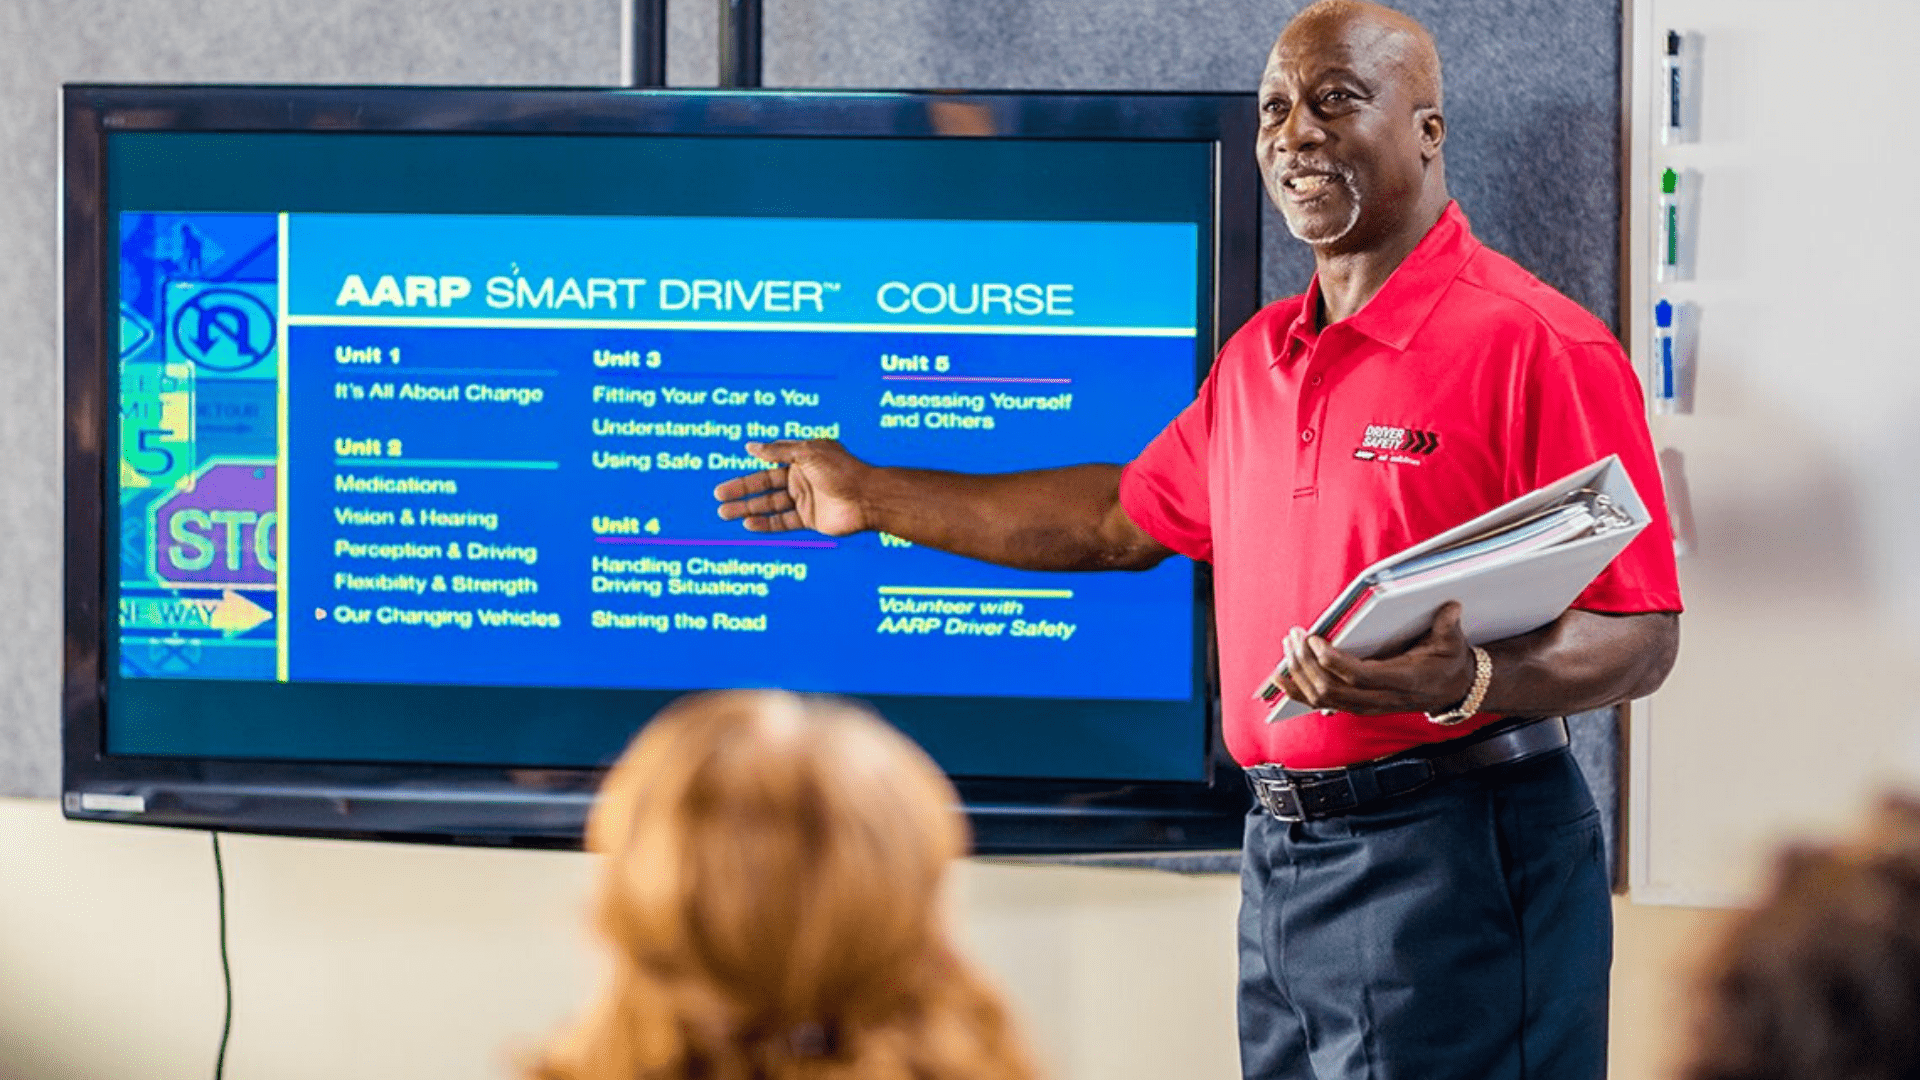 Increase your knowledge about driving.